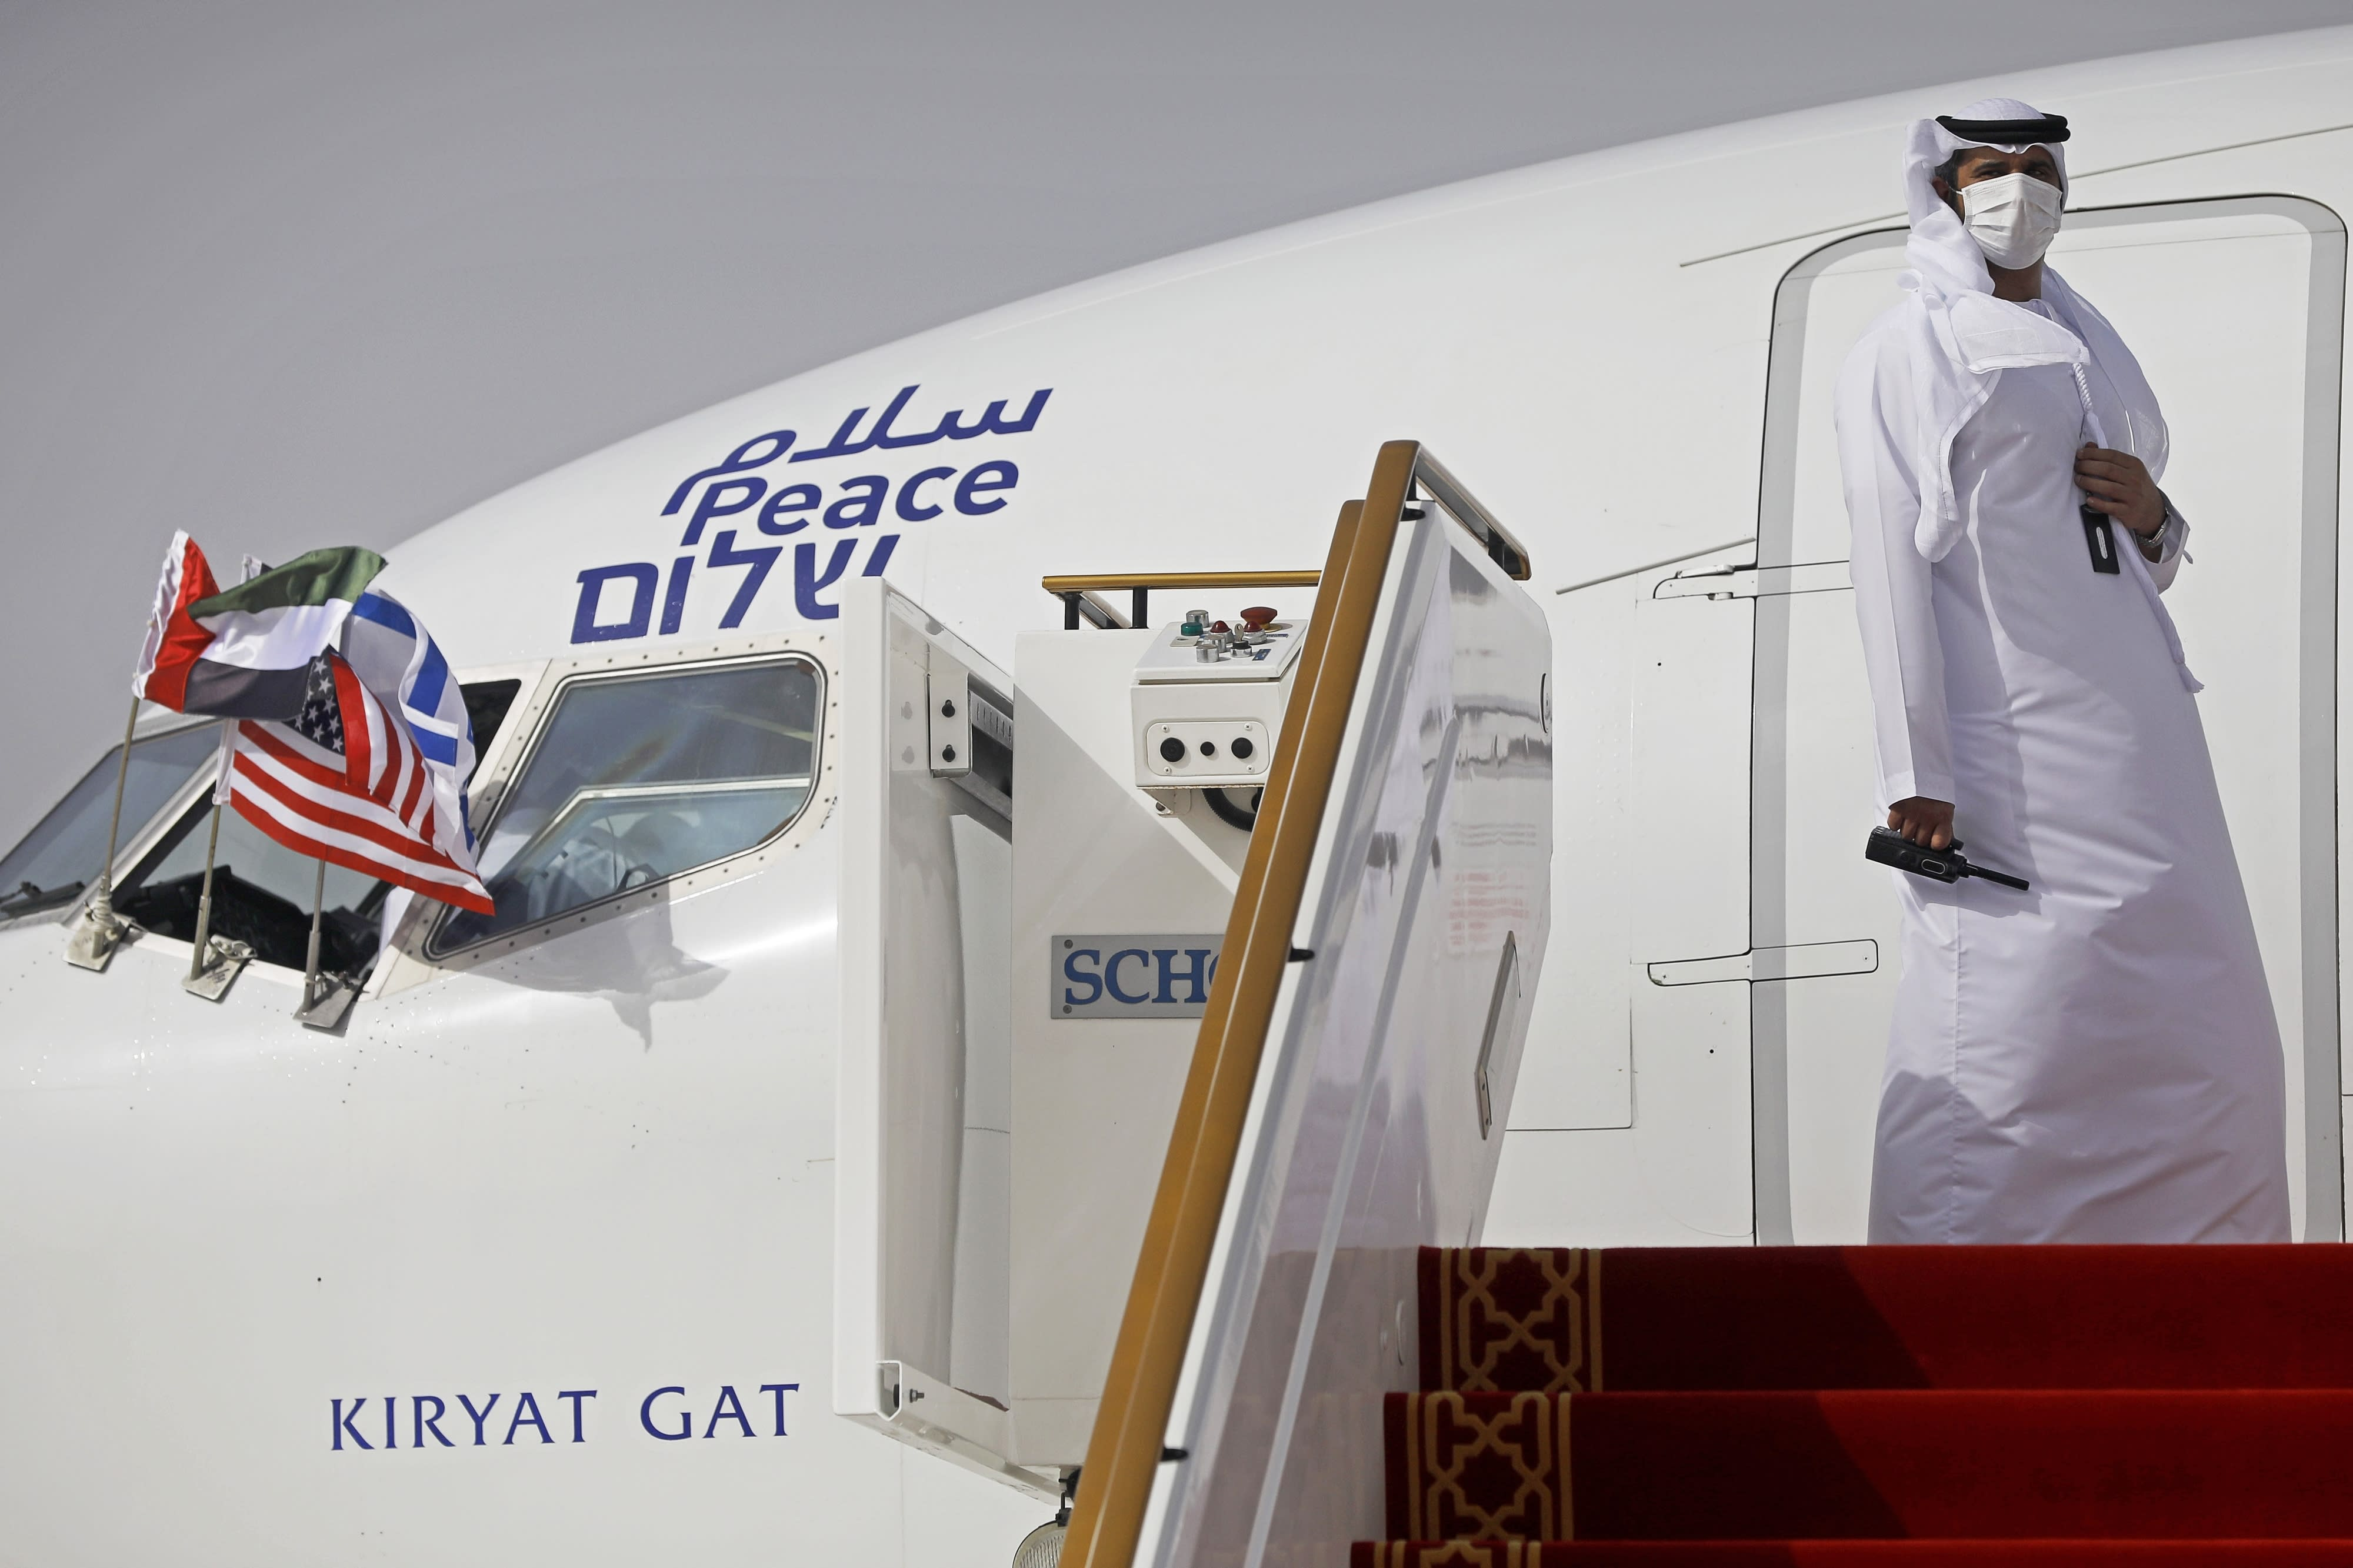 """FILE - In this Monday, Aug. 31, 2020 file photo, an official stands at the door of an Israeli El Al airliner after it landed in Abu Dhabi, United Arab Emirates. The Saudi Press Agency announced Wednesday, Sept. 2, 2020, that it will allow flights """"from all countries"""" to cross its skies to reach the United Arab Emirates. The announcement comes just days after Saudi Arabia allowed the first direct Israeli commercial passenger flight to use its airspace to reach the UAE, signaling acquiescence for a breakthrough U.S.-brokered deal by the United Arab Emirates to normalize relations with Israel. (Nir Elias/Pool Photo via AP, File)"""